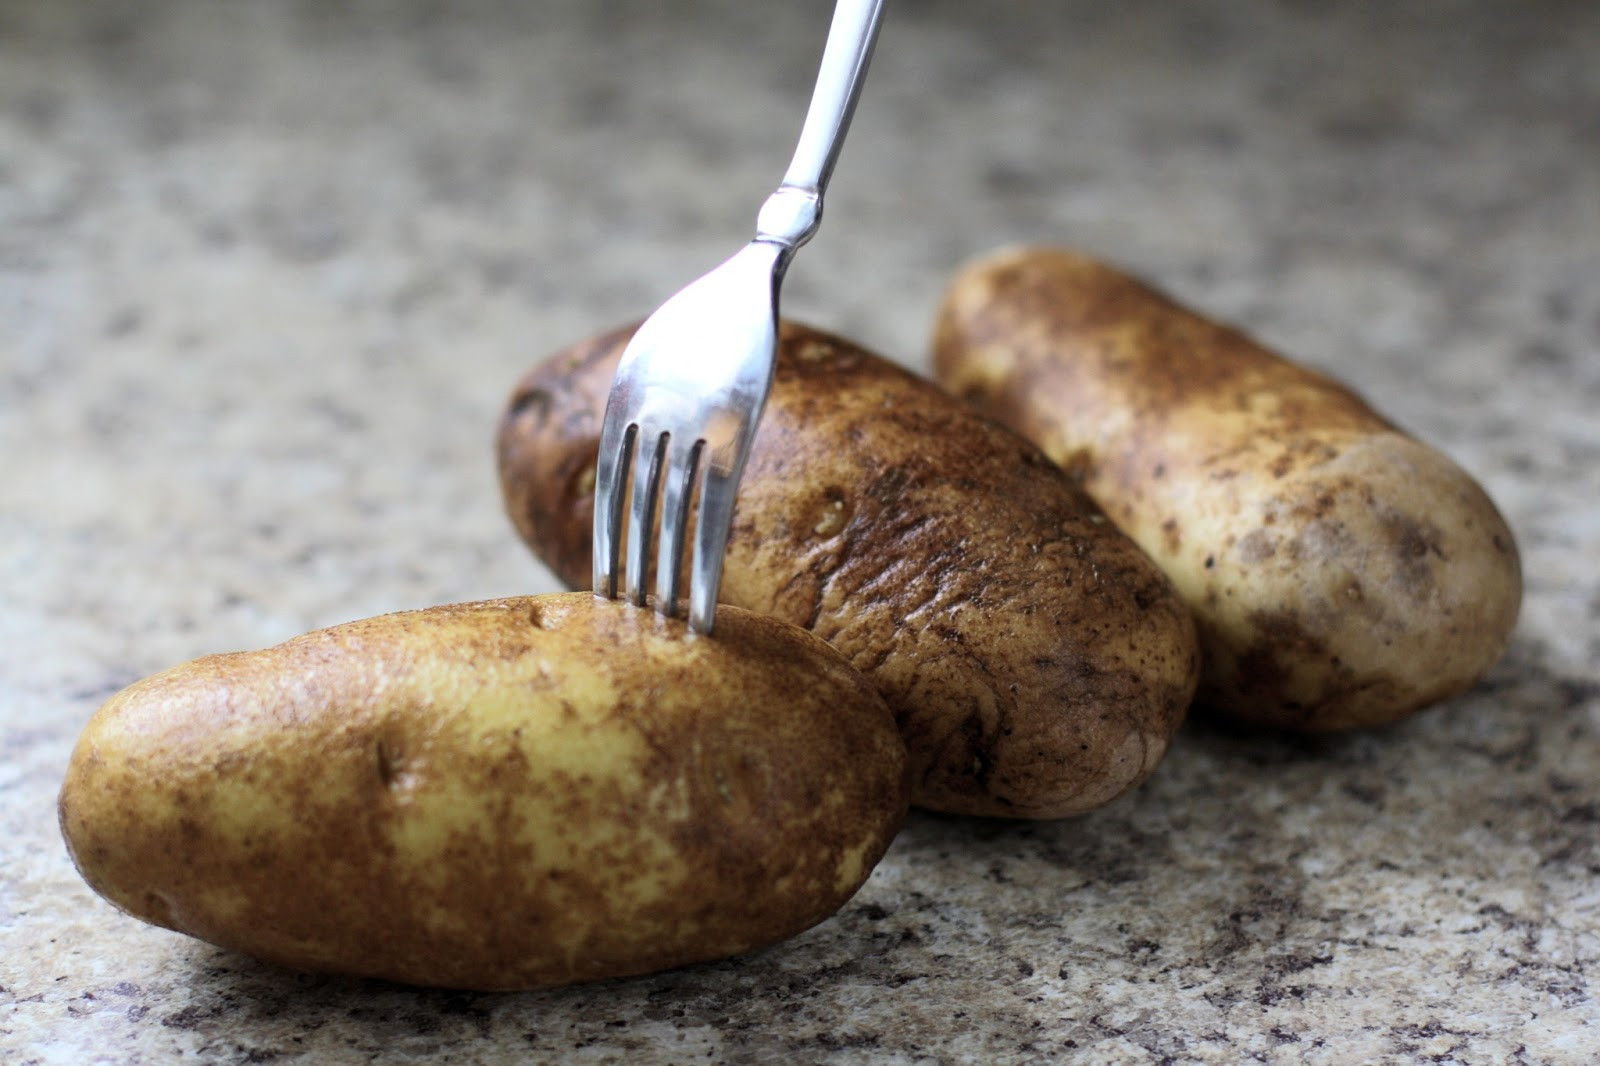 Baked Potato Alton Brown  BAKED POTATOES with BROCCOLI & AN AMAZING CHEESE SAUCE